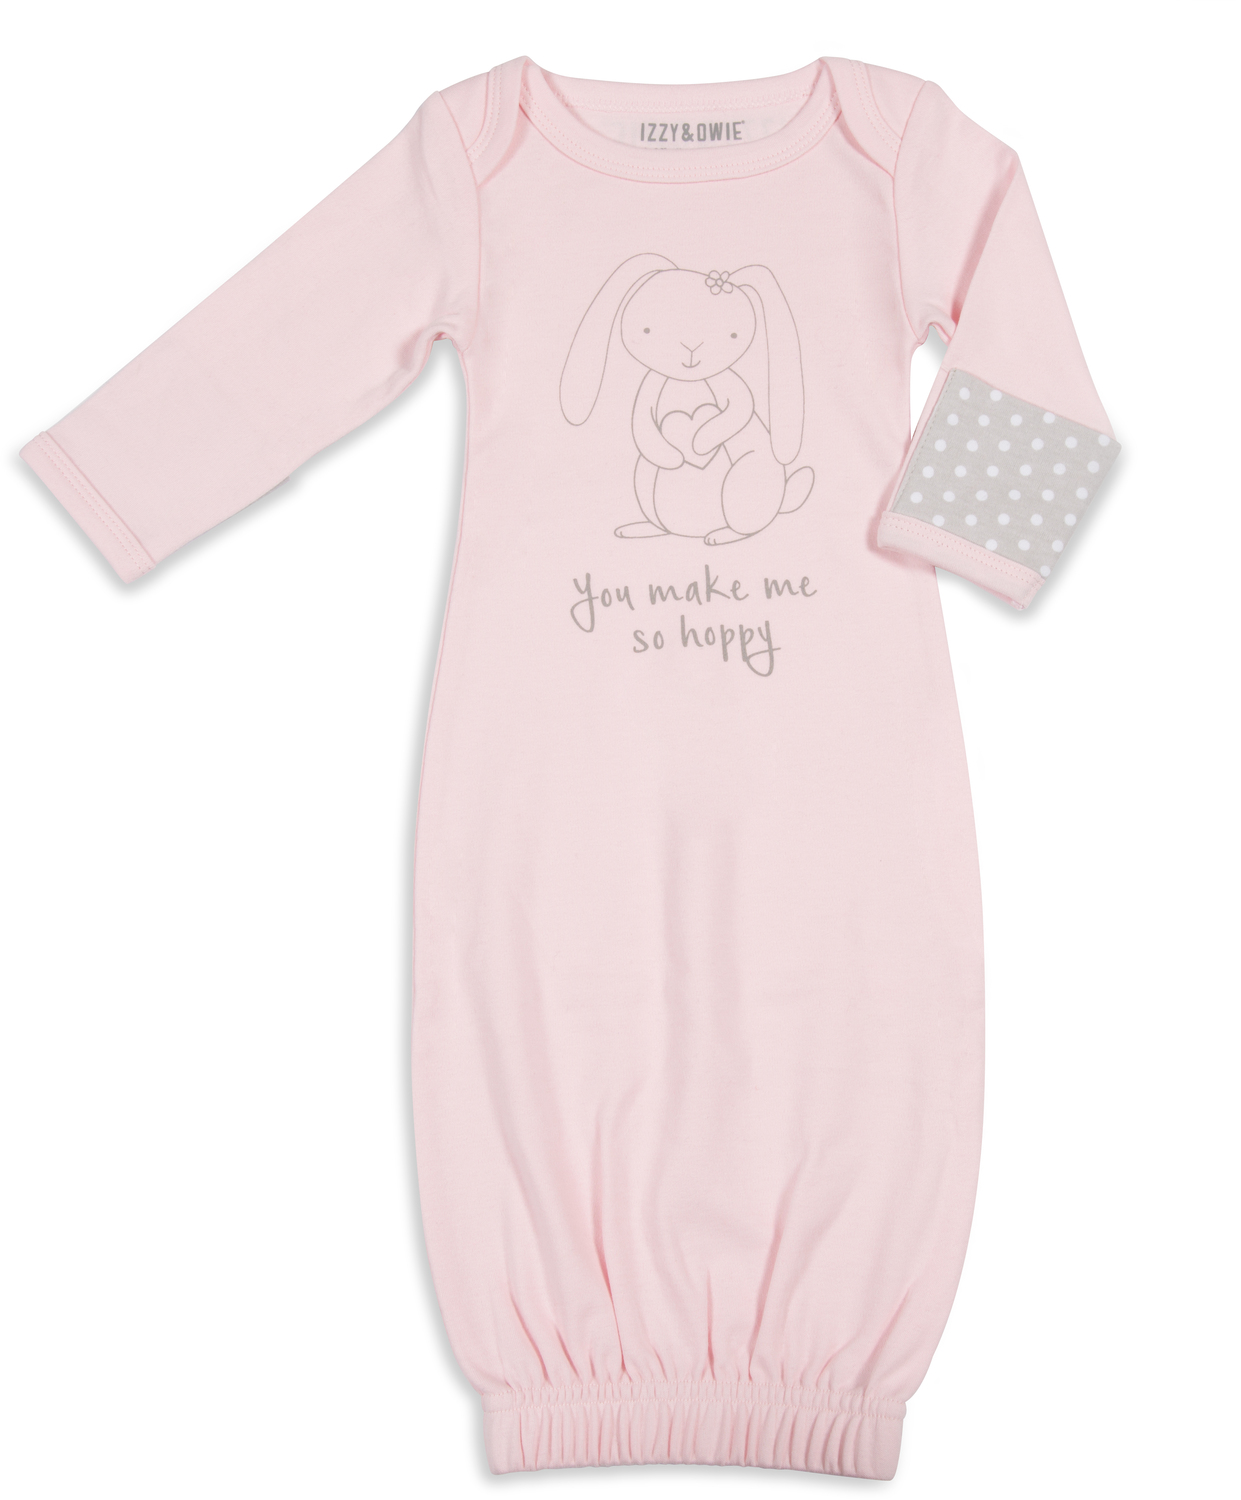 Soft Pink Bunny by Izzy & Owie - Soft Pink Bunny - 0-3 Months Gown with Mitten Cuffs